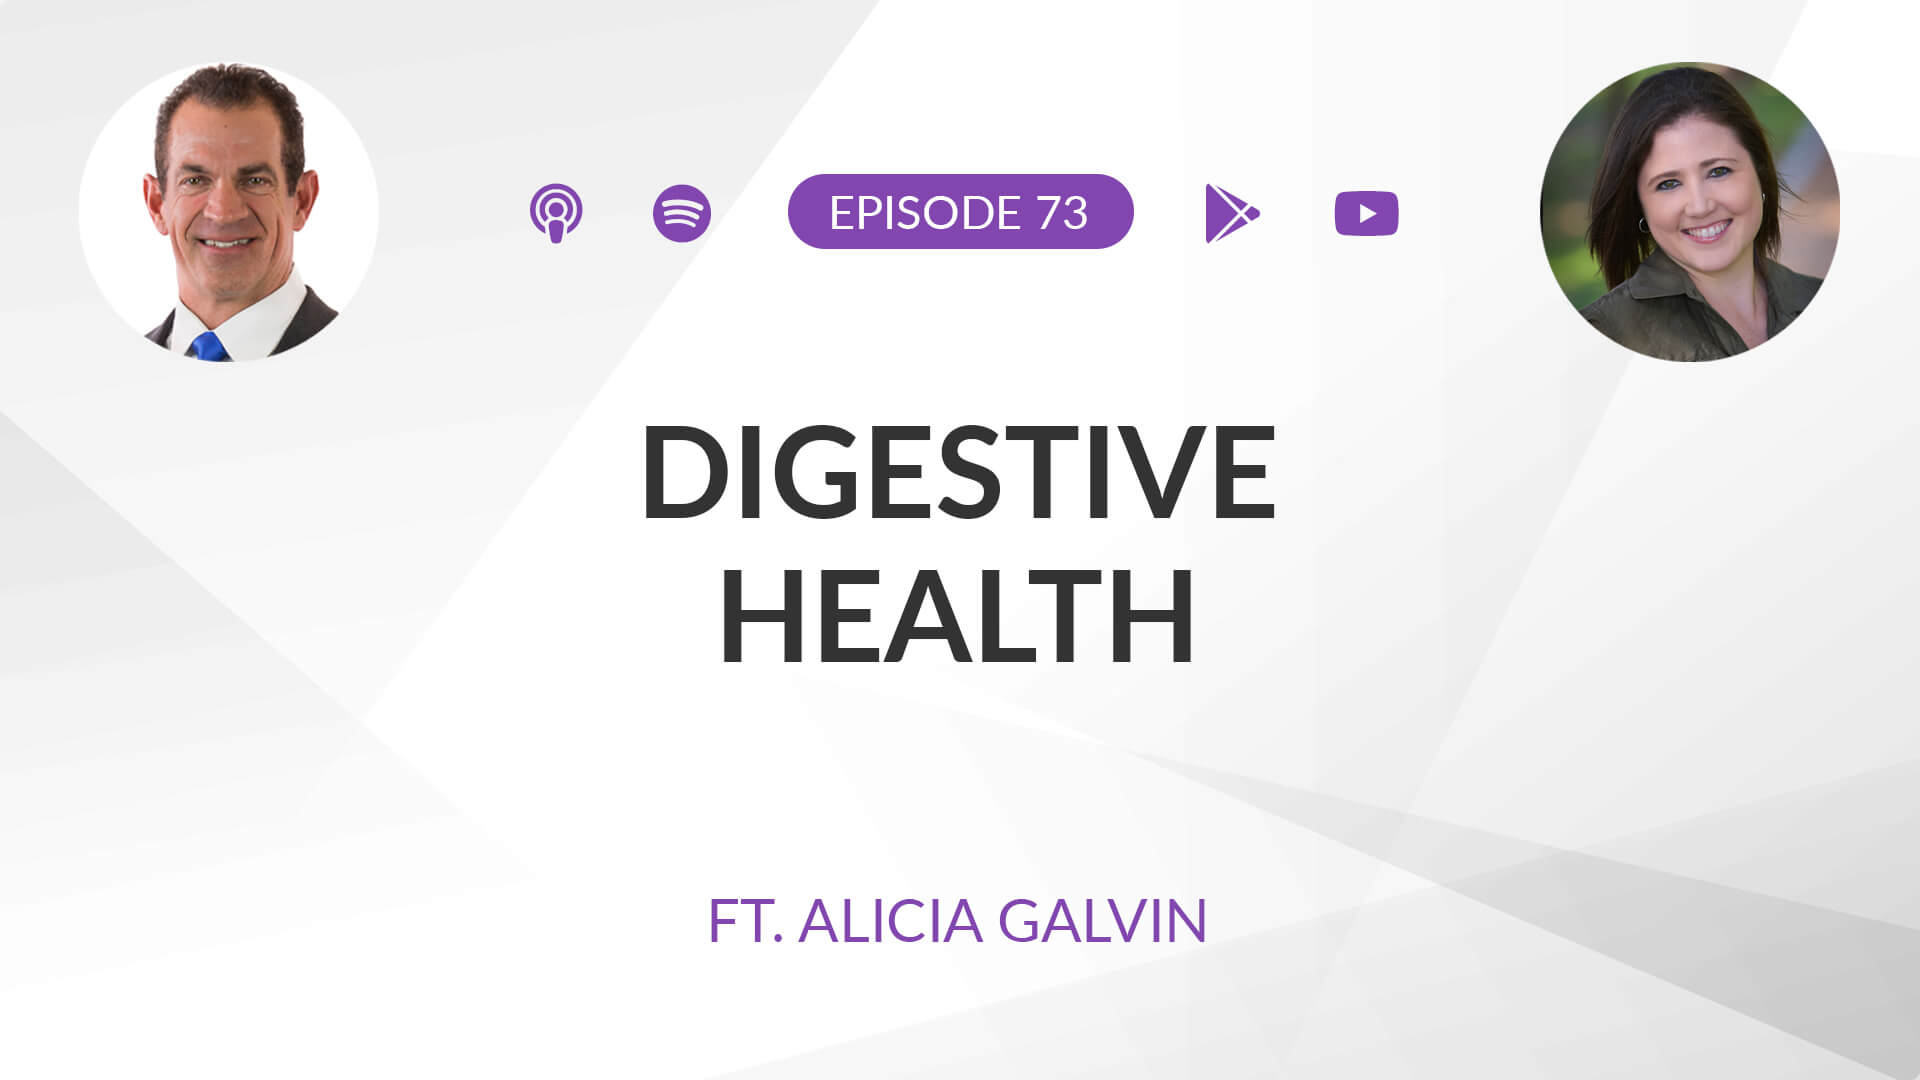 Ep 73: Digestive Health and Colostrum ft. Alicia Galvin